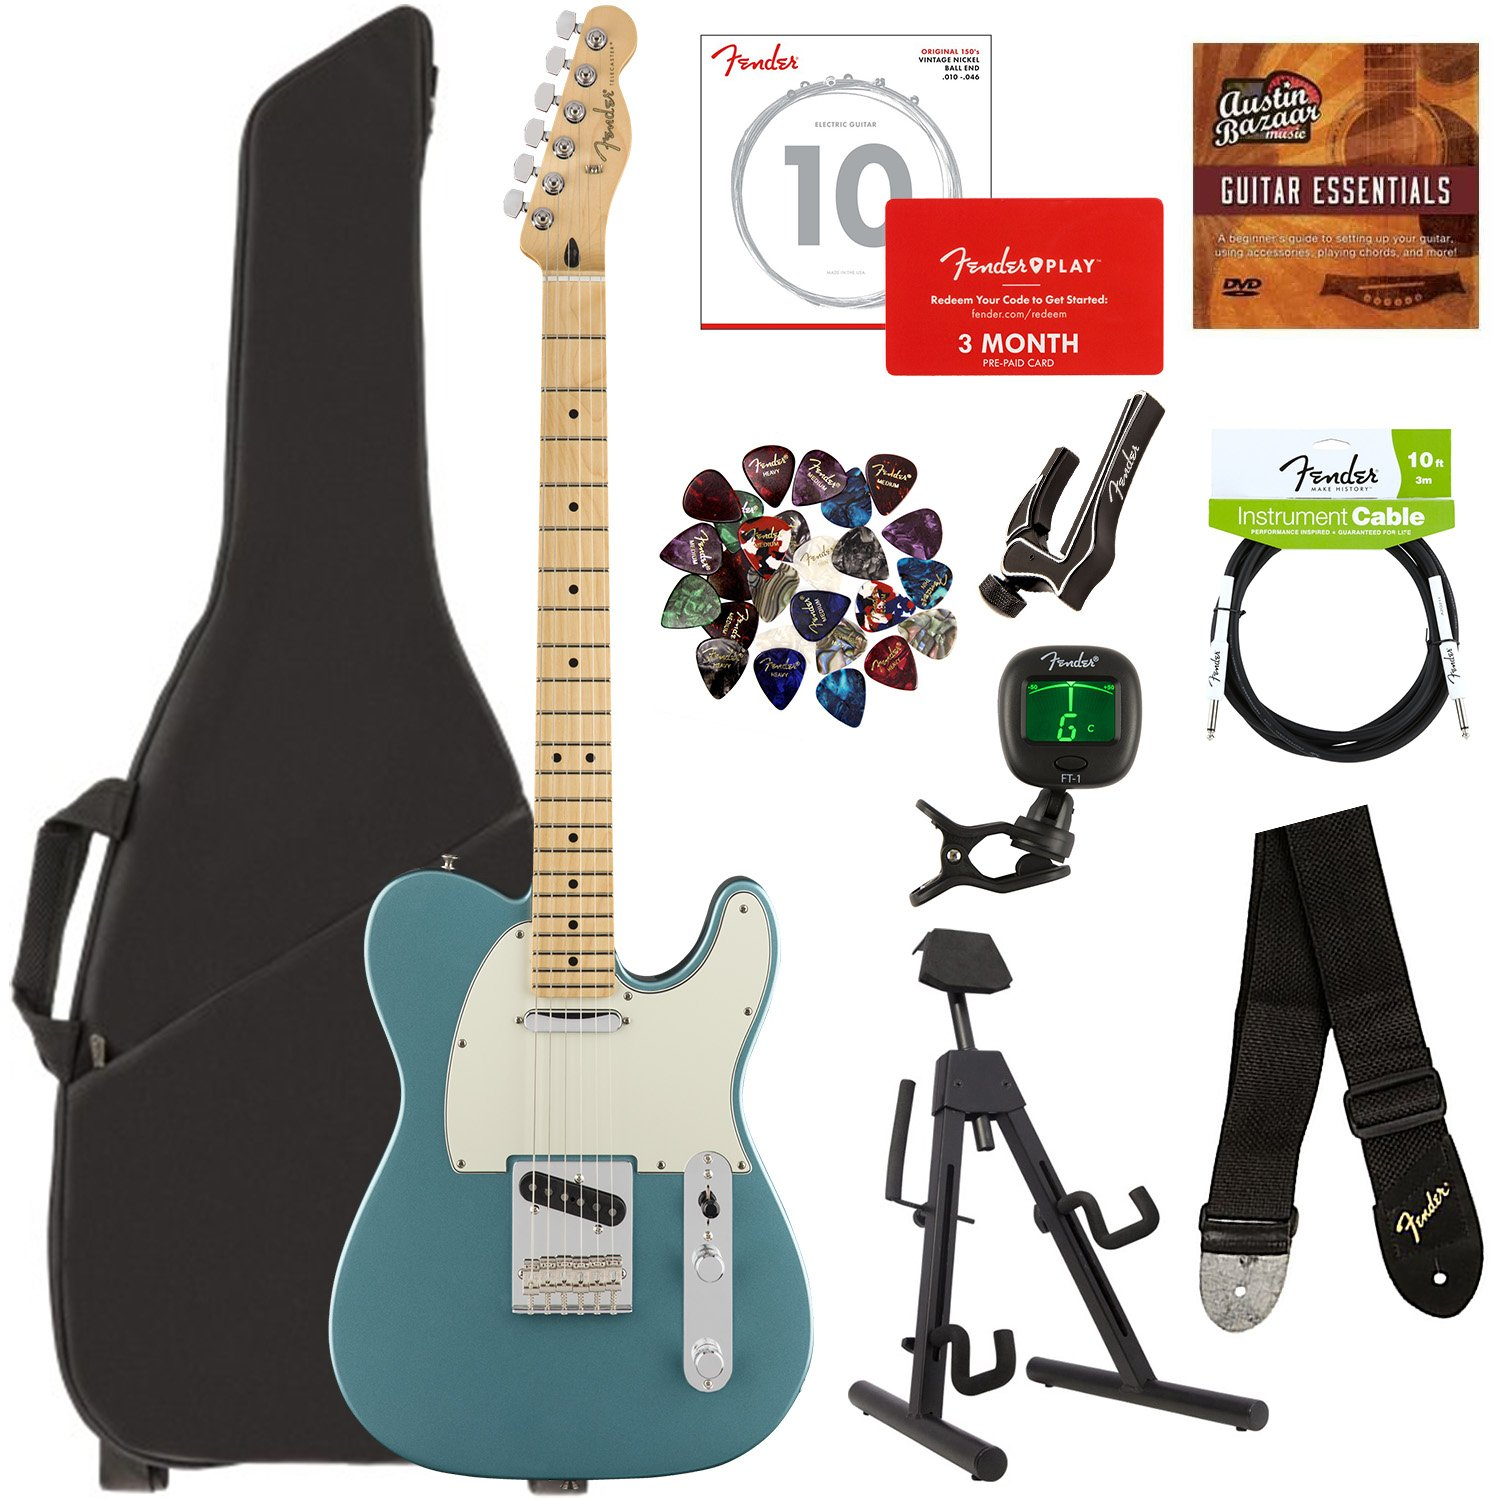 Fender Player Telecaster, Maple - Tidepool Bundle with Gig Bag, Stand, Cable, Tuner, Strap, Strings, Picks, Capo, Fender Play Online Lessons, and Austin Bazaar Instructional DVD